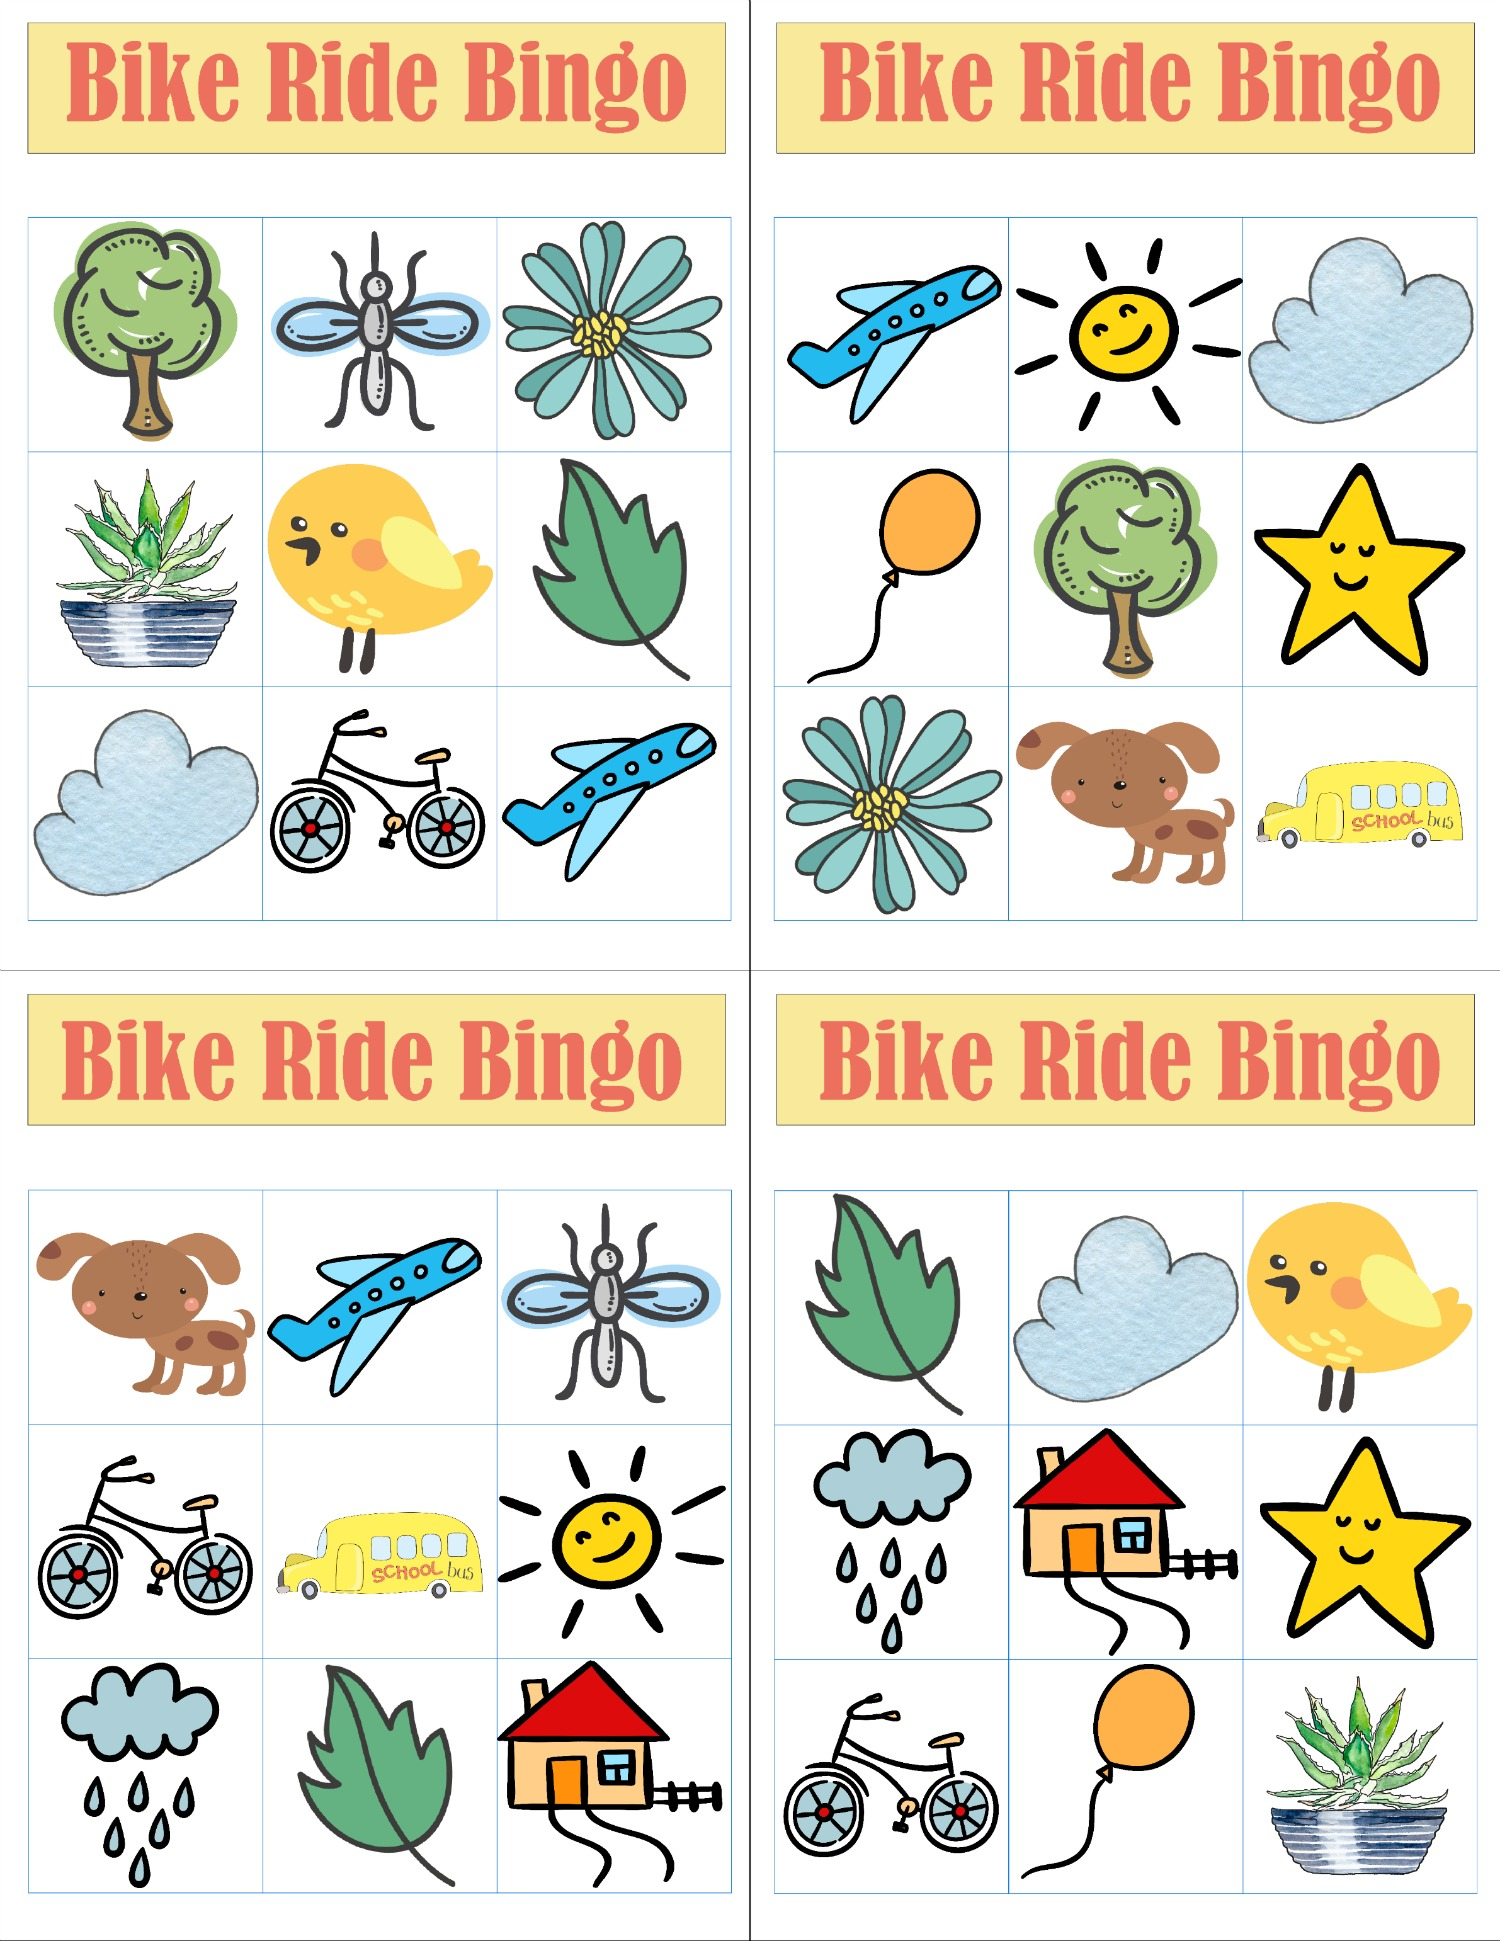 Add some adventure to your family's bike ride with these FREE Bike Ride Bingo printables.